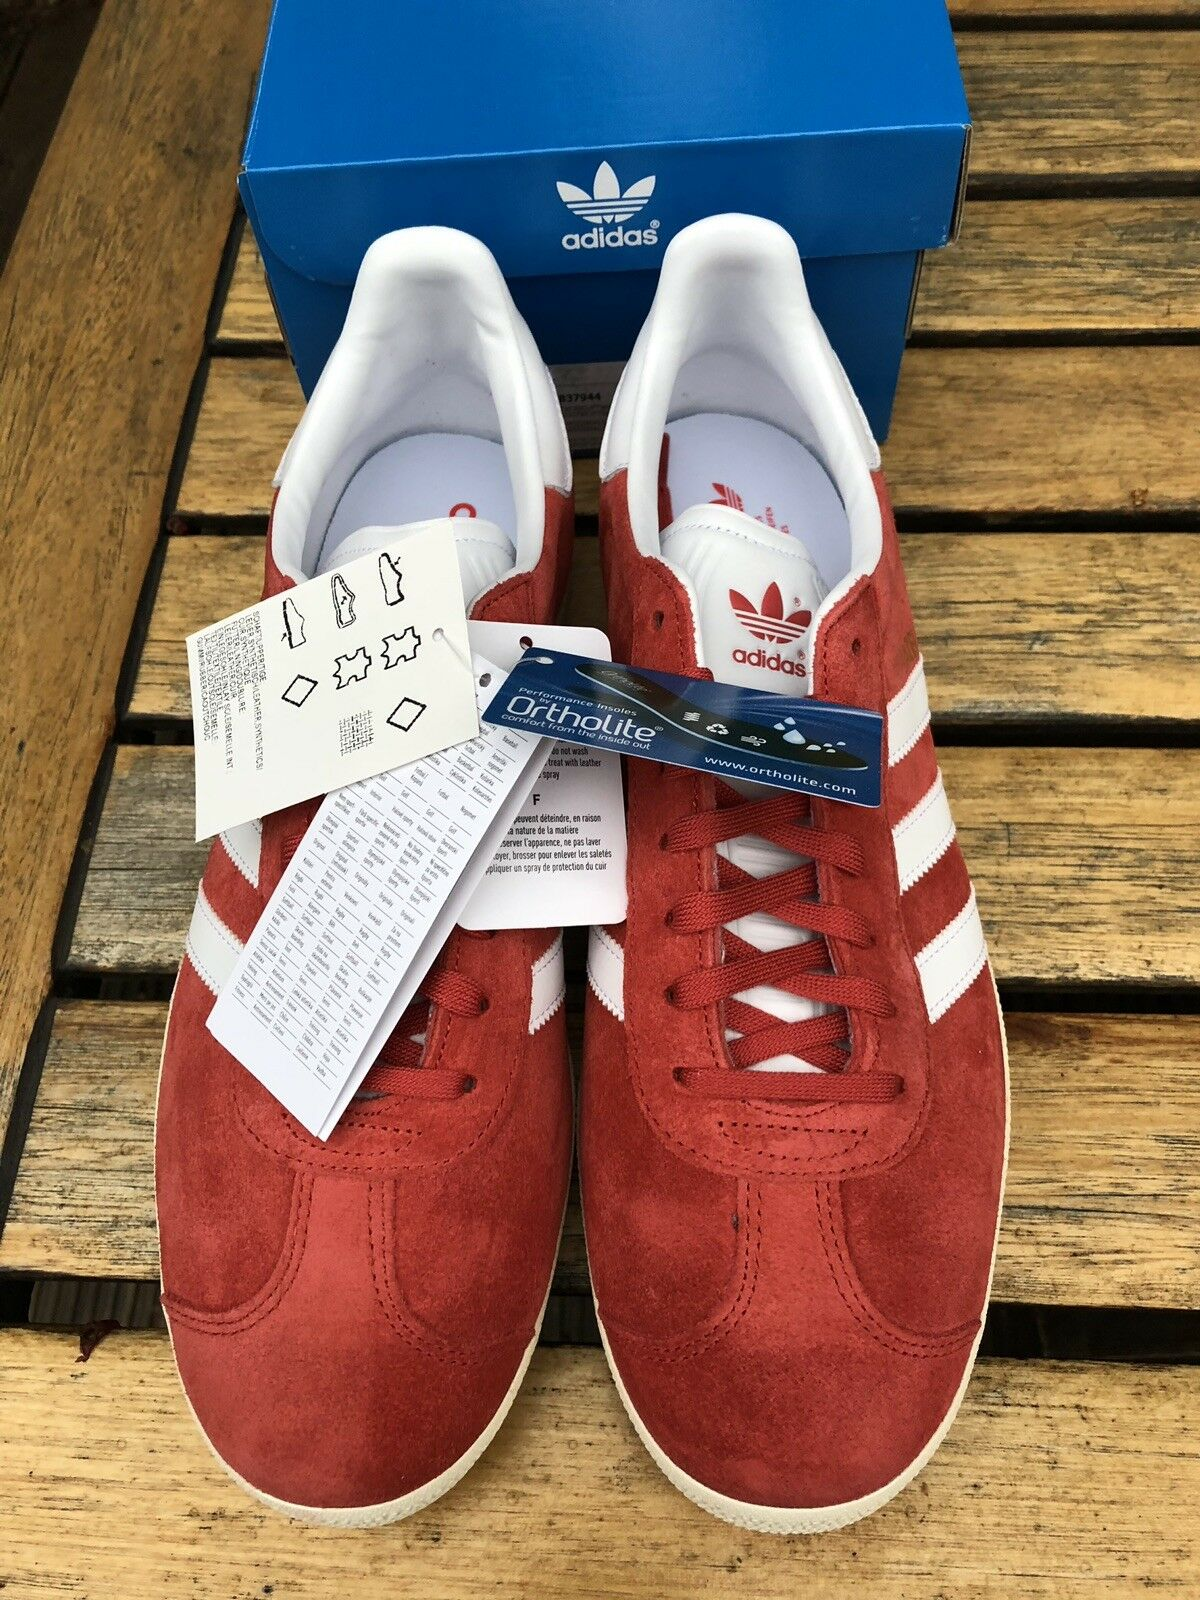 Adidas Originals Gazelle Trainers Pumps Brand Größe 10 Retro Mod Scooter Ska Brand Pumps New 6063a9